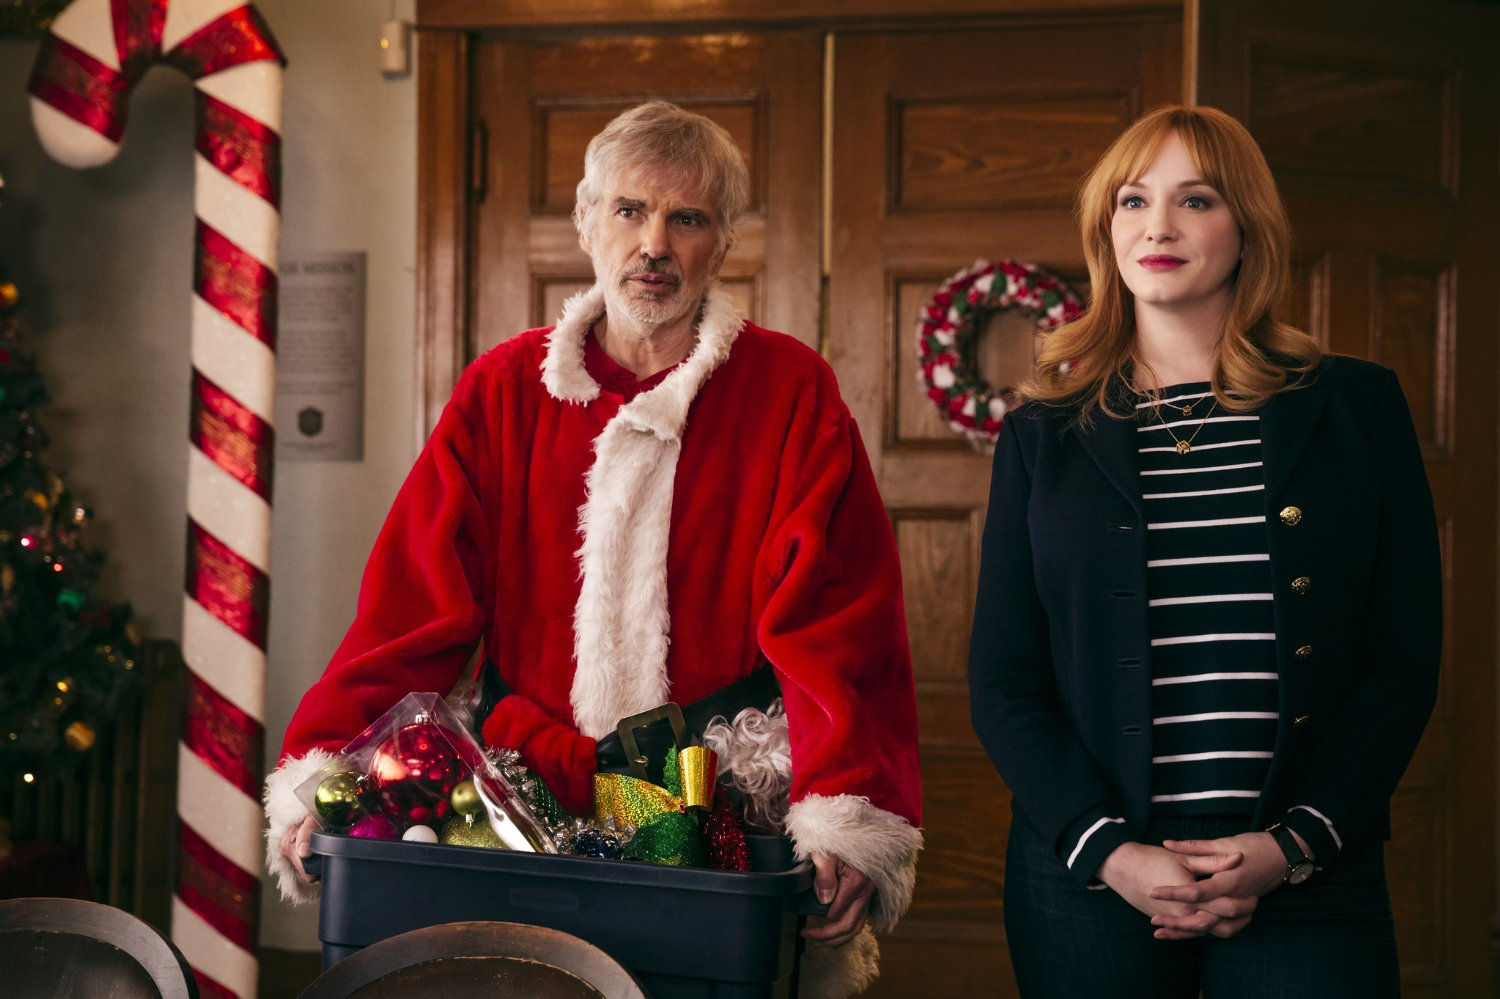 boom competitions - Win a copy of Bad Santa 2 on Blu-ray